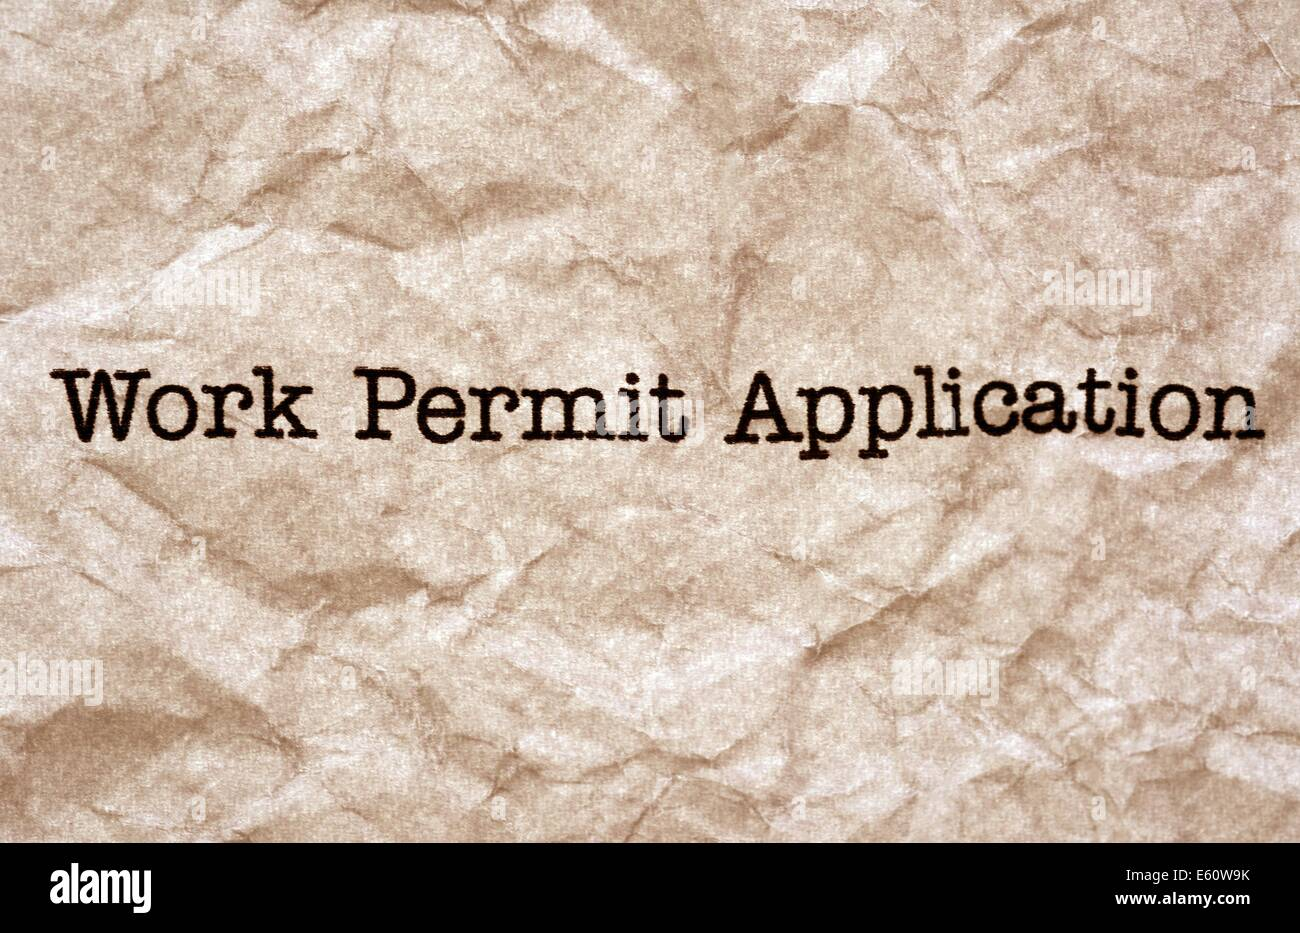 is study permit required for work permit application